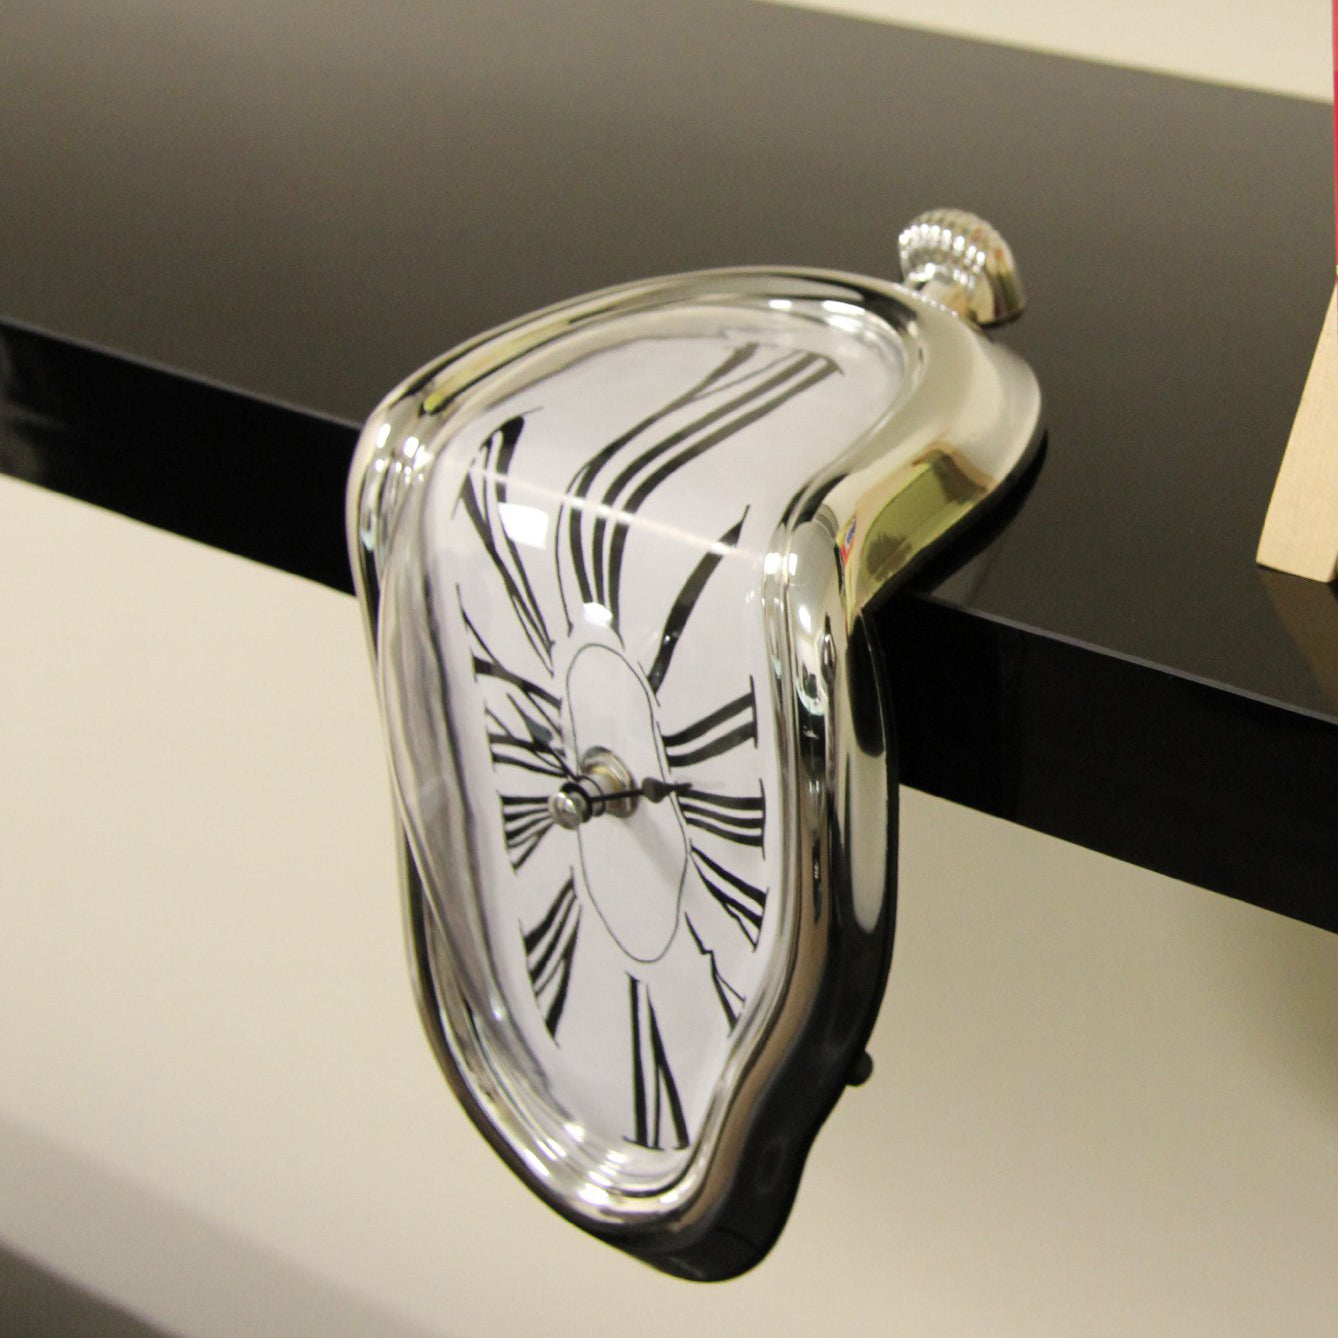 Melting Home Decor Clock The Happy Loop